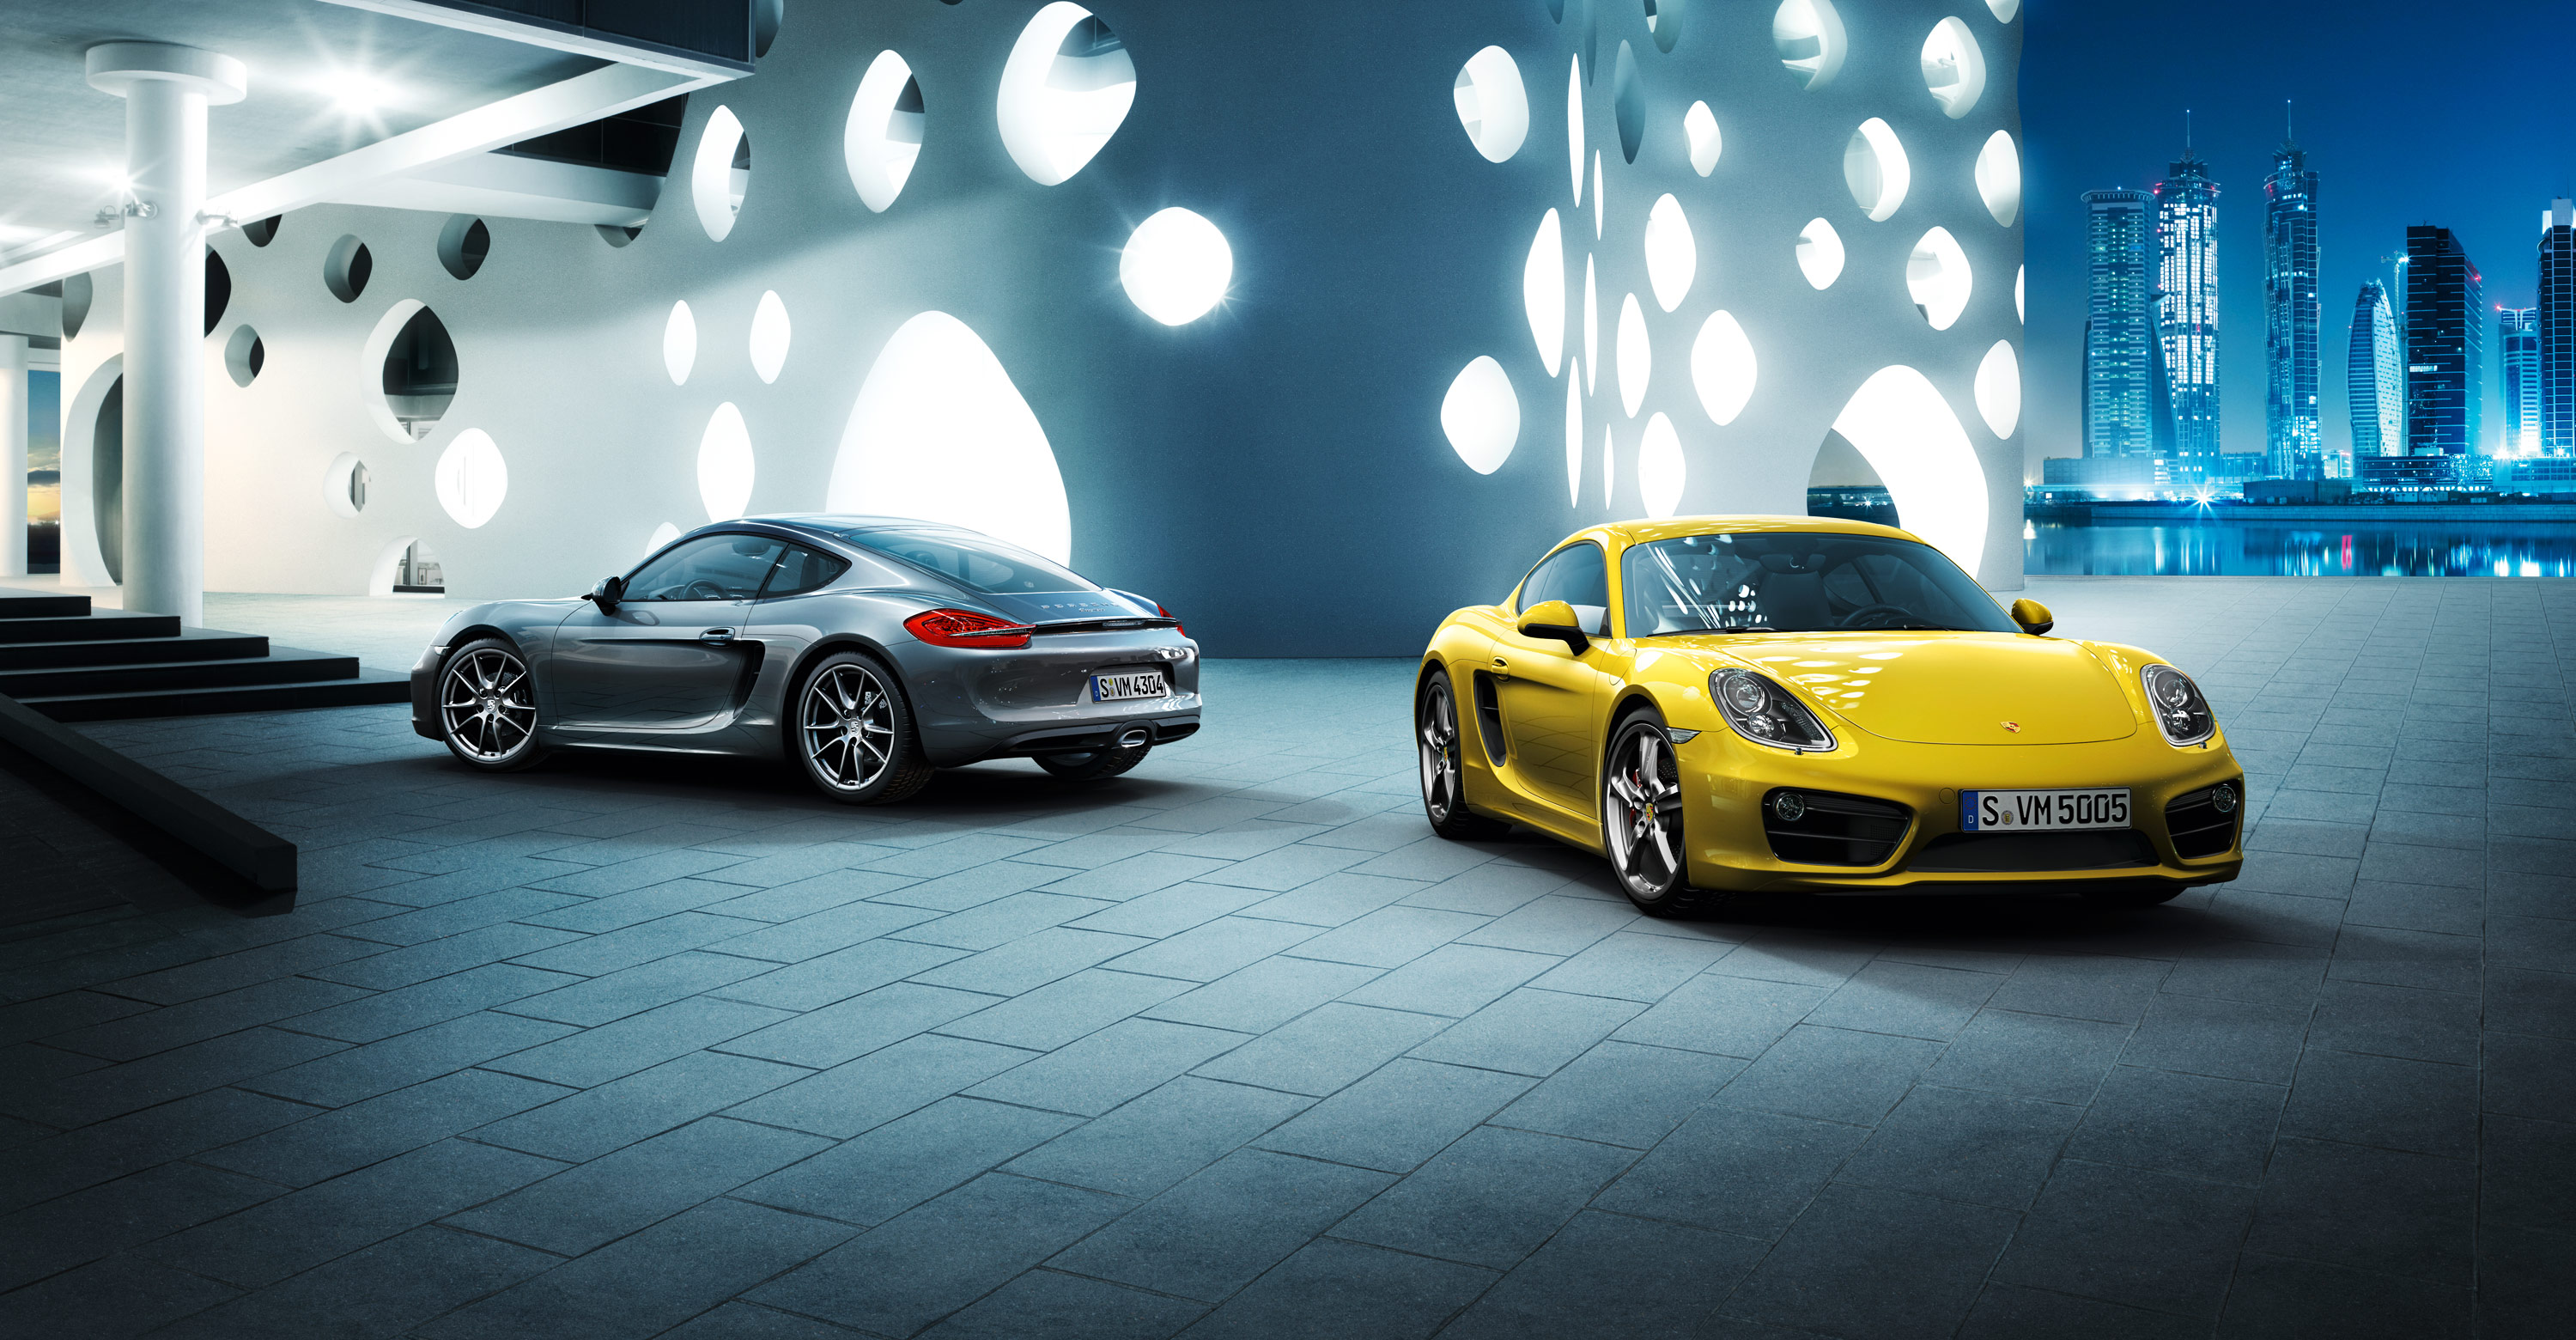 2013-porsche-cayman-wallpaper_15